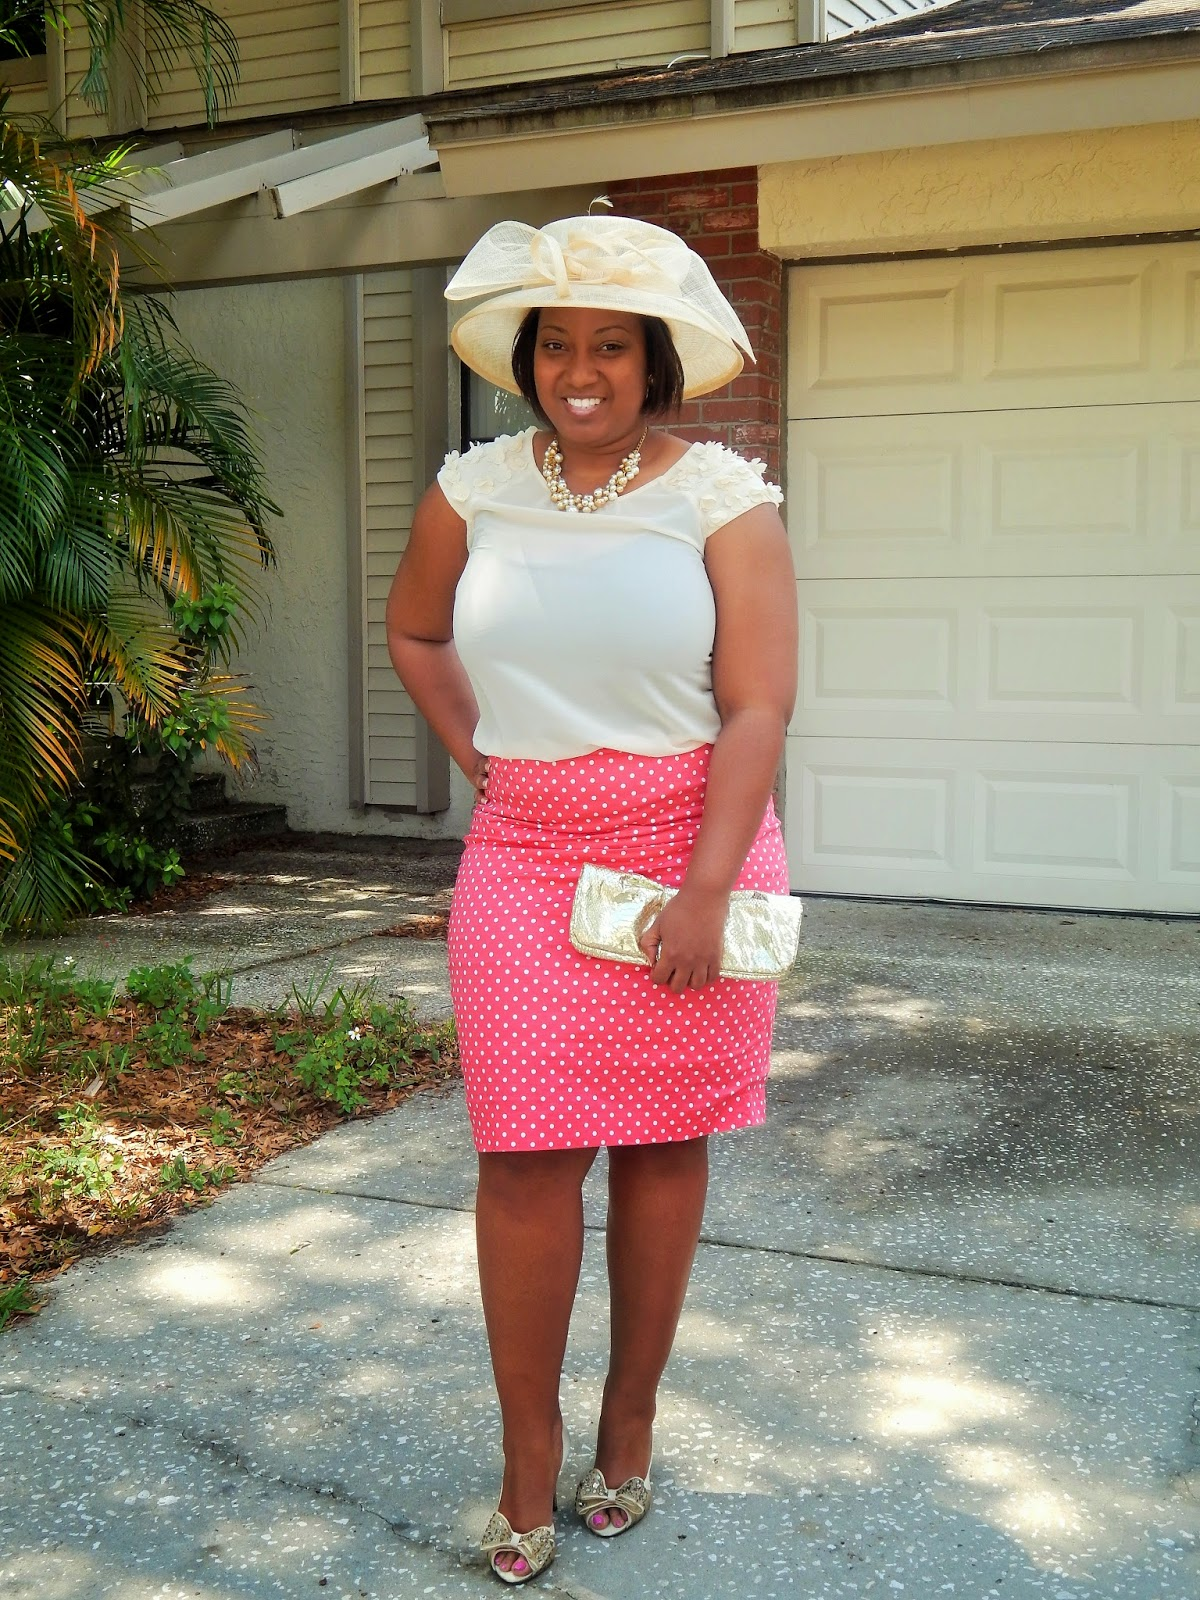 de39c275b567b I decided to wear a church lady hat lol for the occasion. I love hats